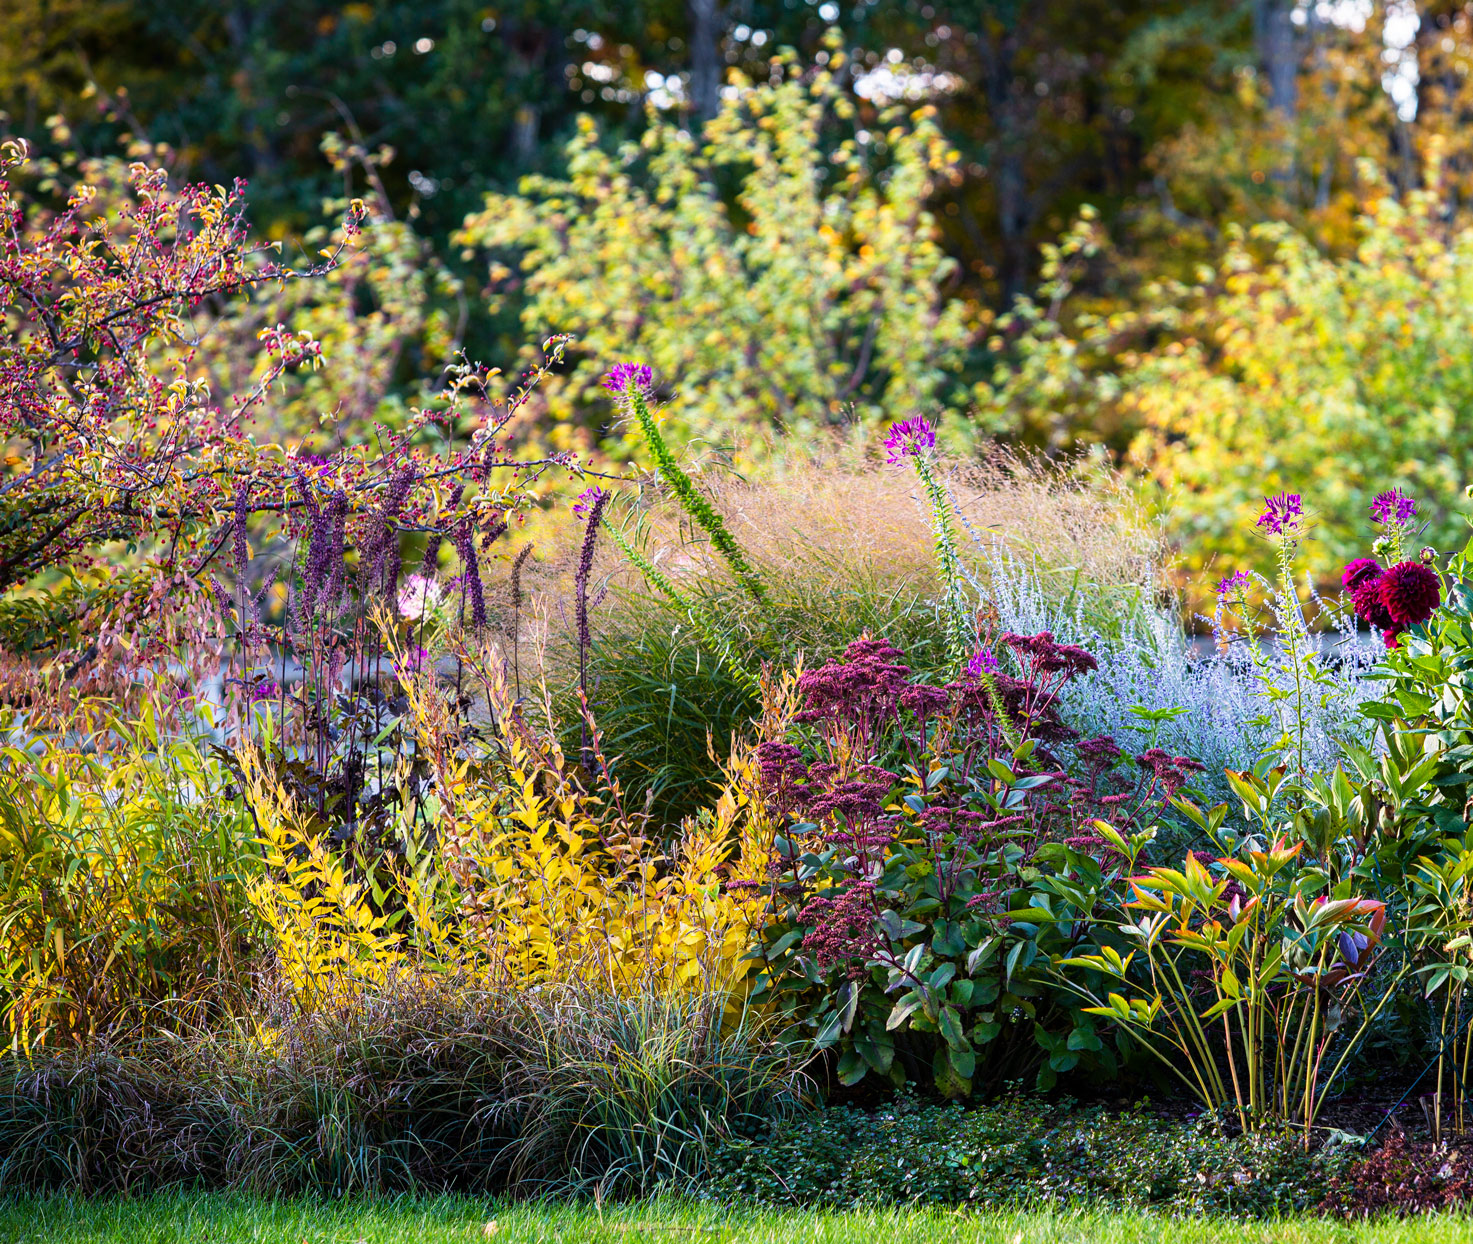 full garden featuring fall flowers and foliage